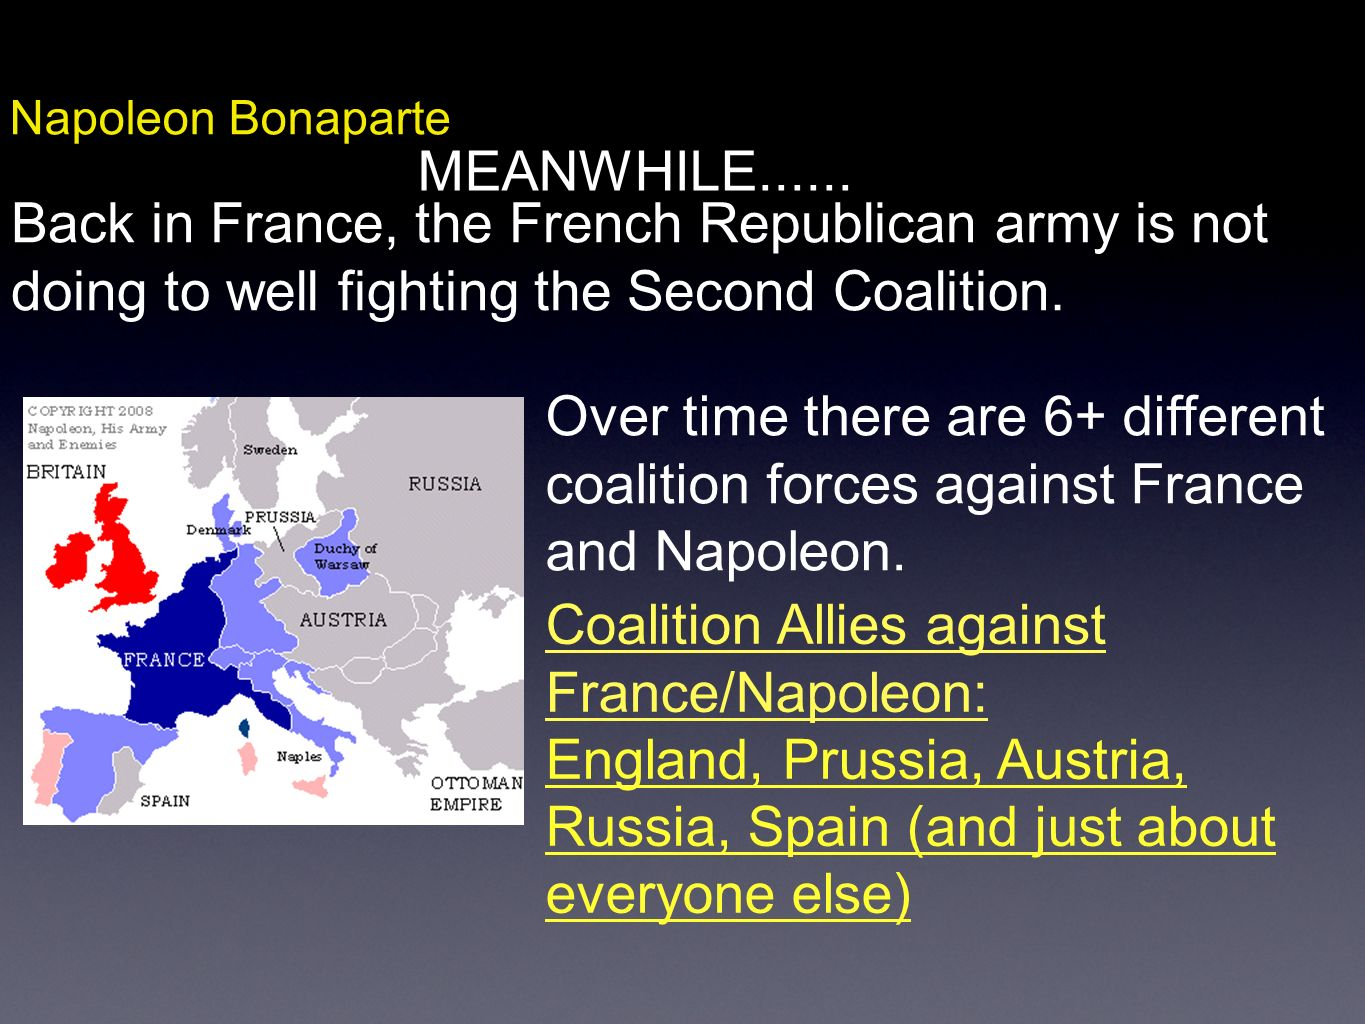 Coalition Allies against France/Napoleon: